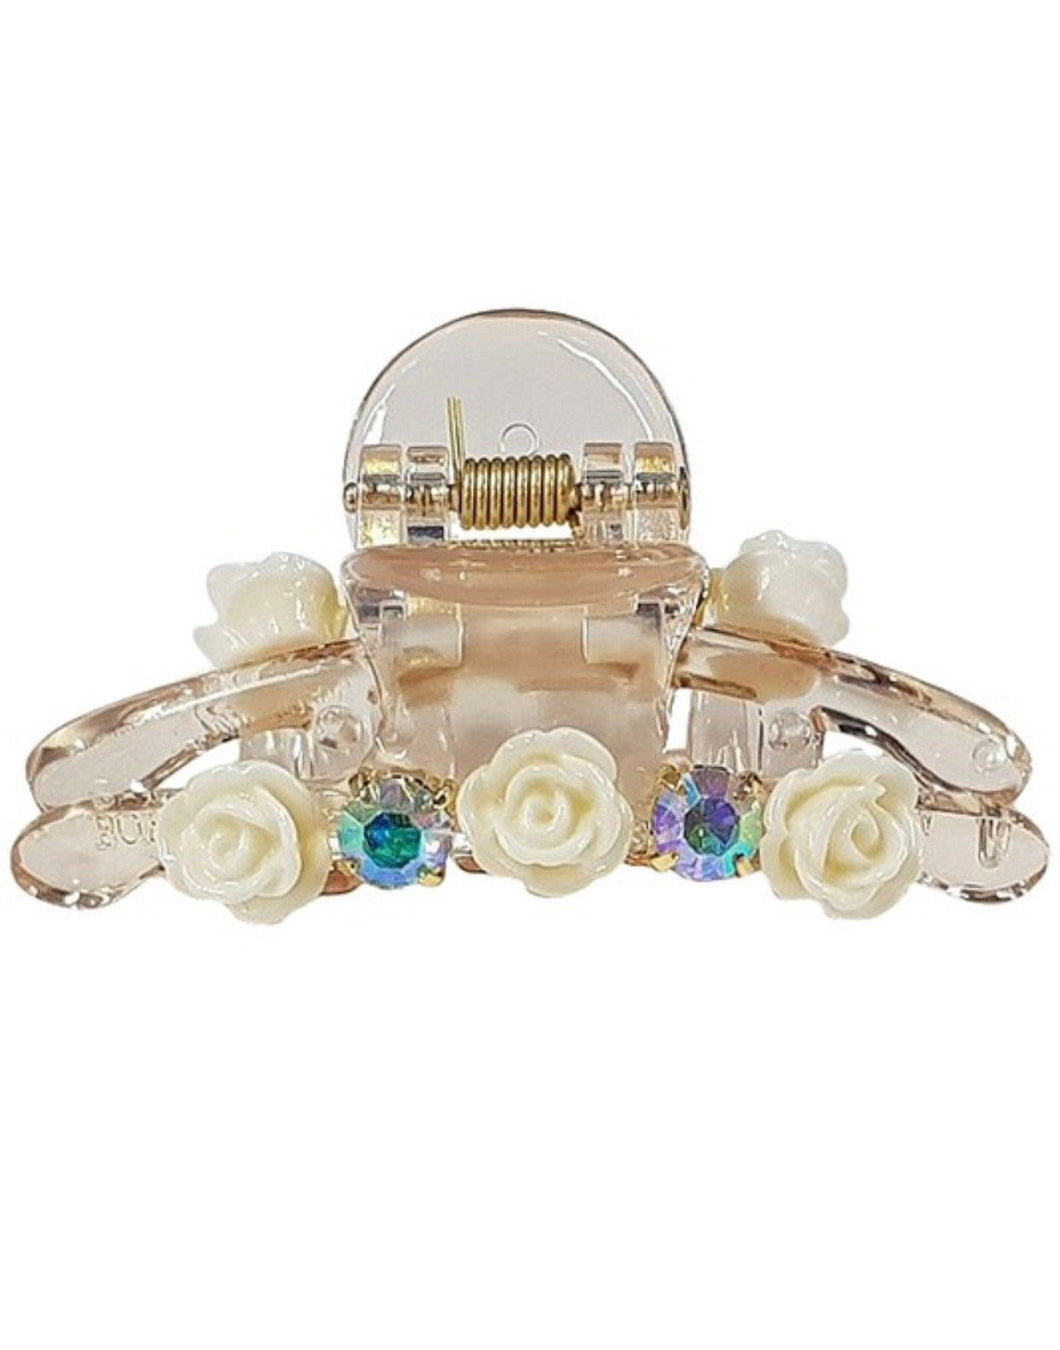 Hair Clip With Rosette Details - Everything Girls Like Boutique